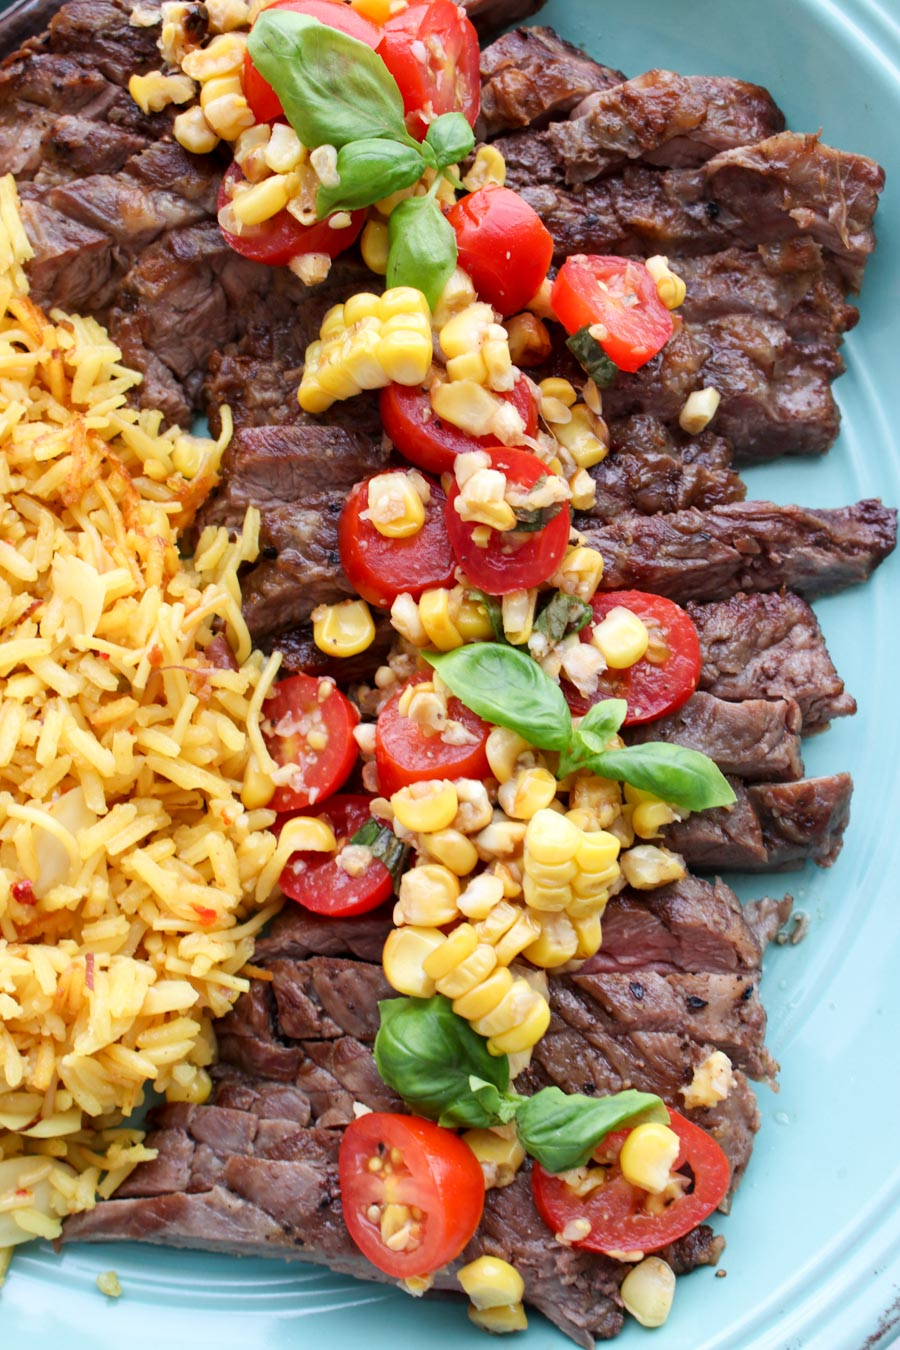 Platter with steak topped with salsa